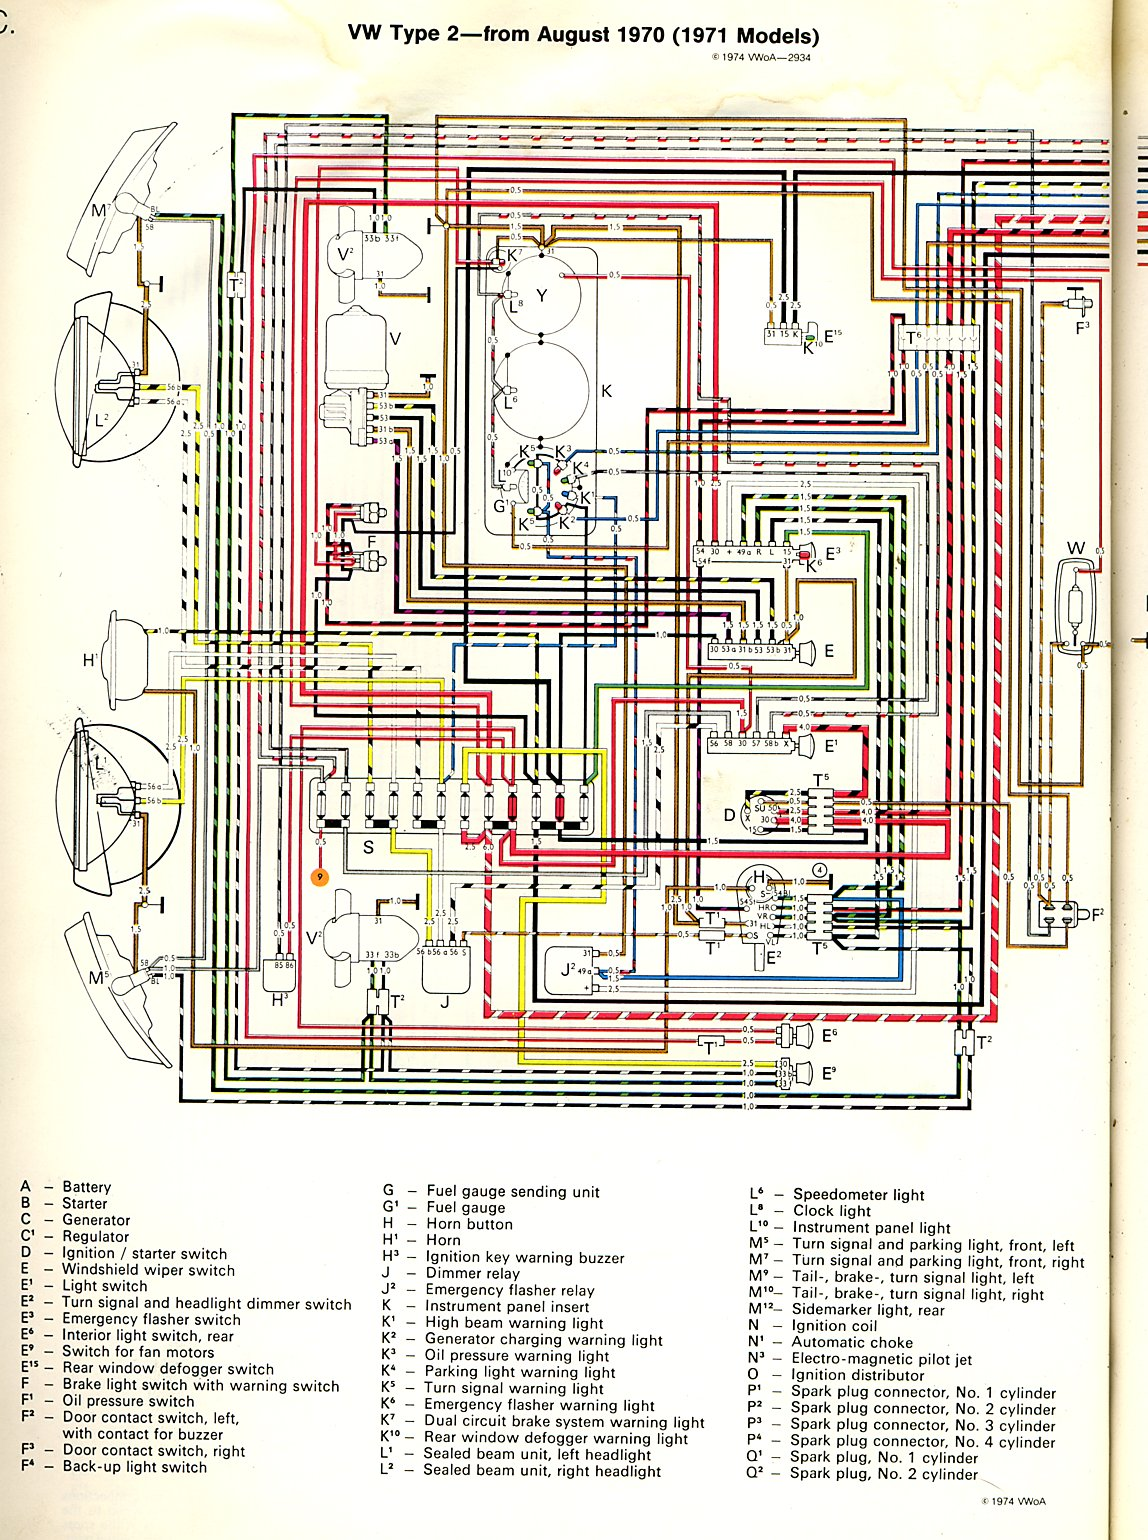 baybus_71a 71 vw bus wiring diagram 1970 vw bus fuse box diagram \u2022 wiring Wiring Harness Diagram at honlapkeszites.co